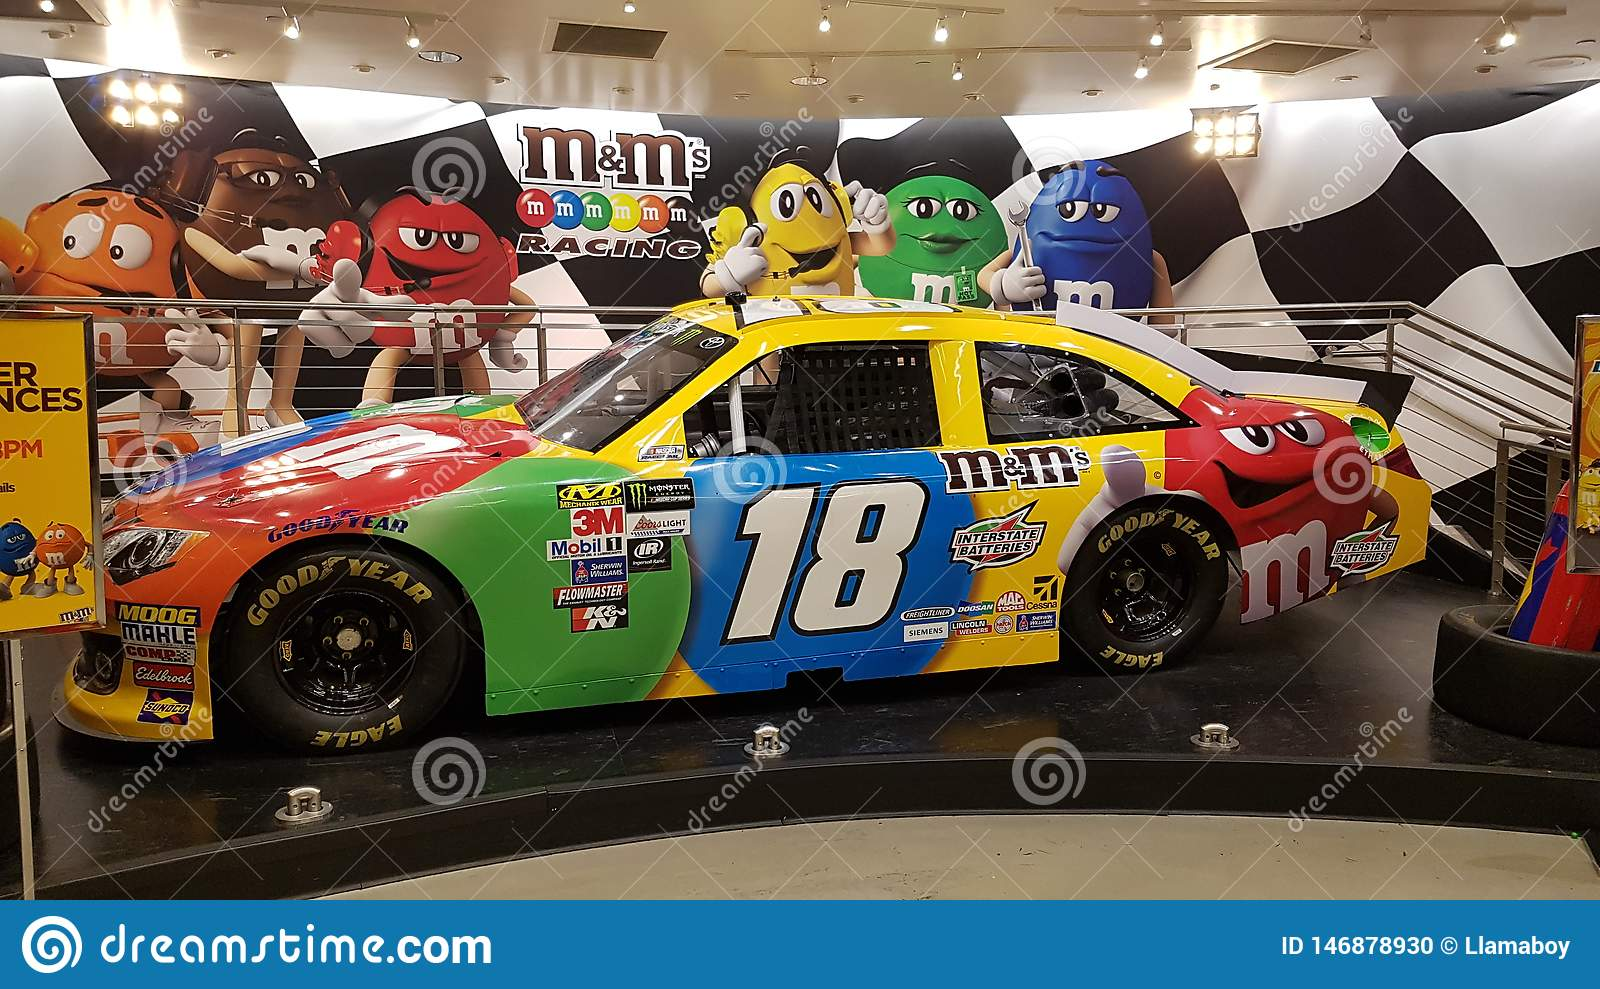 Cool M&m Race Car In The M&m Store In Las Vegas